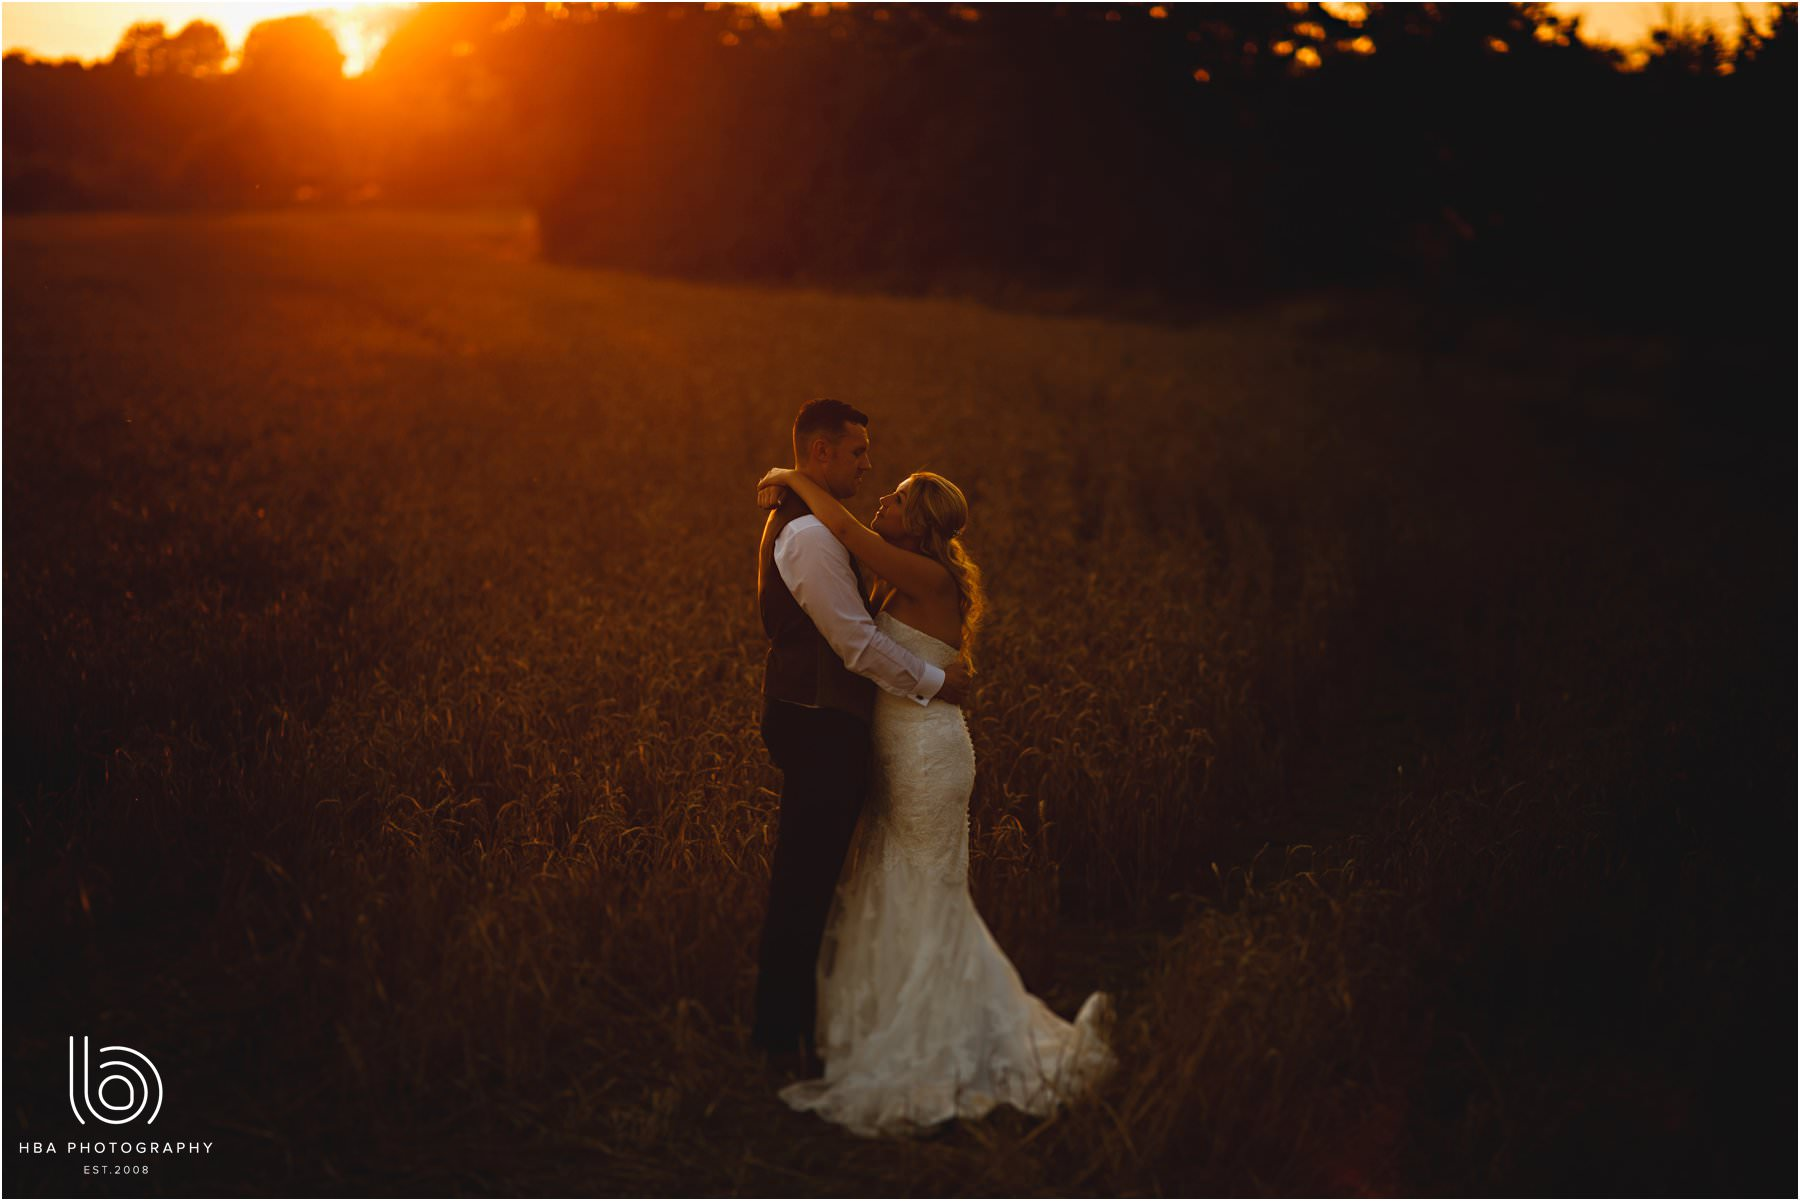 the bride and groom in golden hour sun